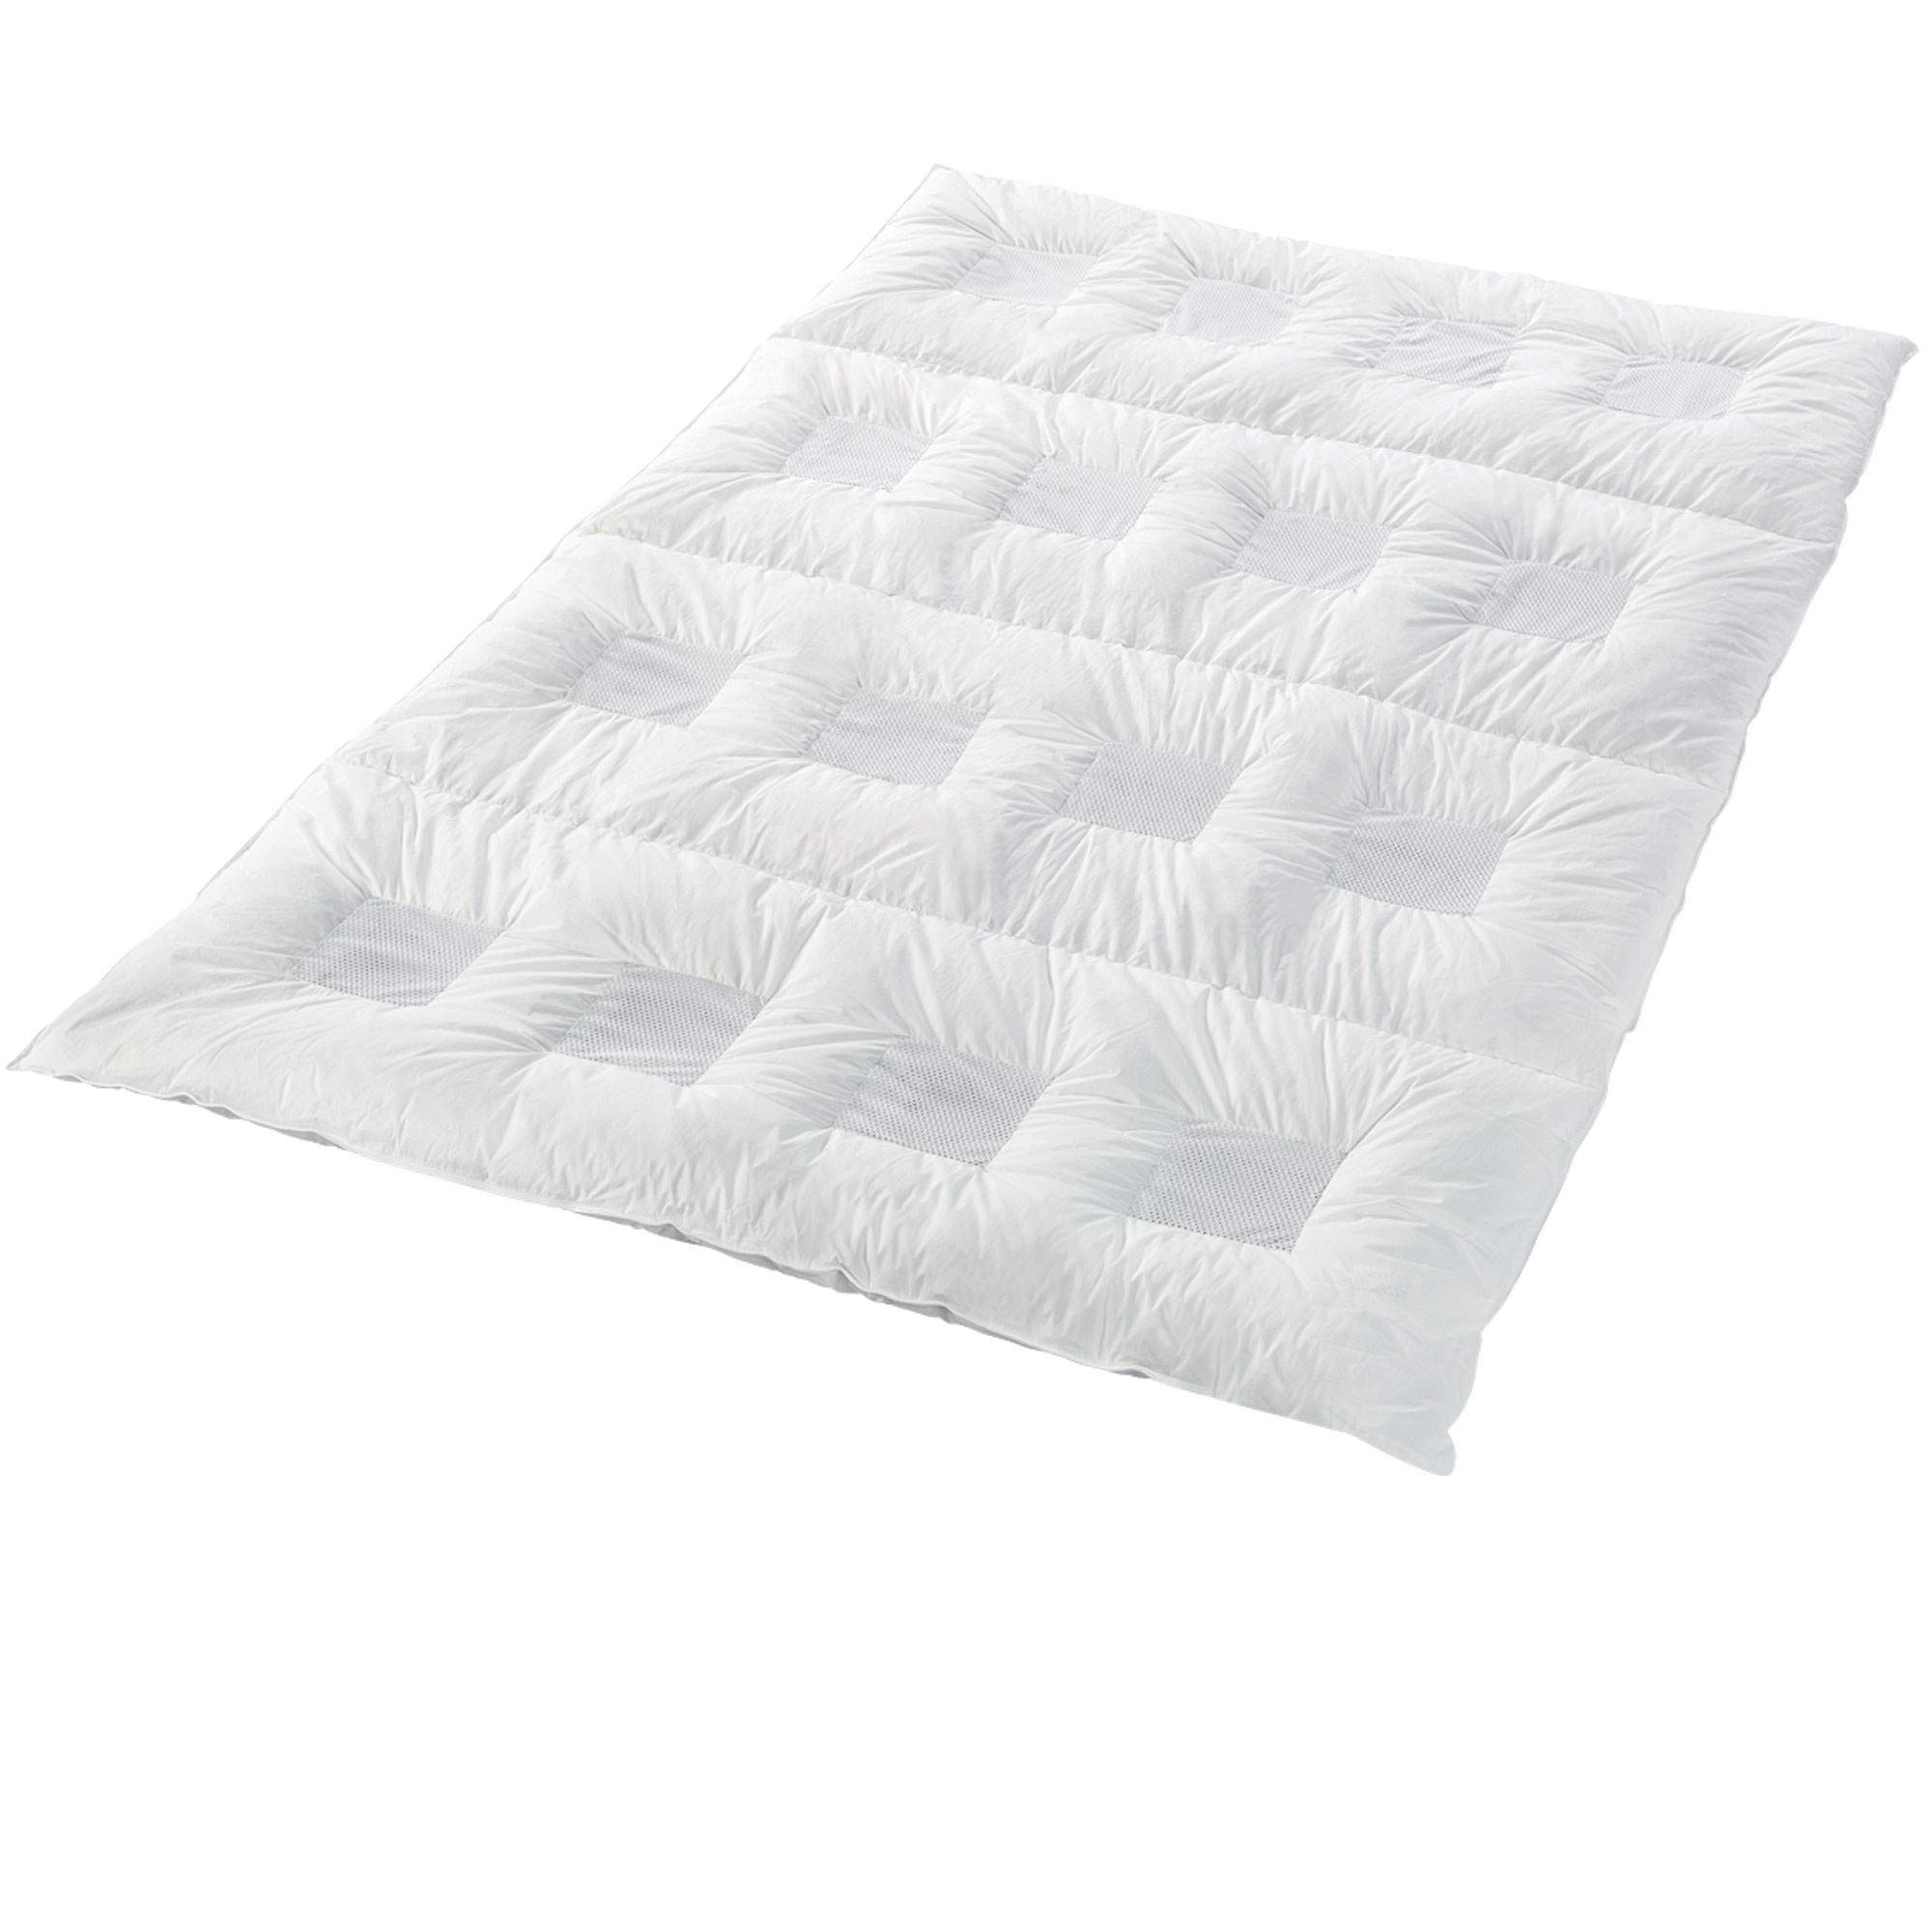 Climabalance #1 Hypoallergenic Lightweight All Year Down Alternative Comforter Twin Patented Design | Increases Deep Sleep Phases by 50% | Sensofill Virgin Polyester | Twin 64'' x 88''